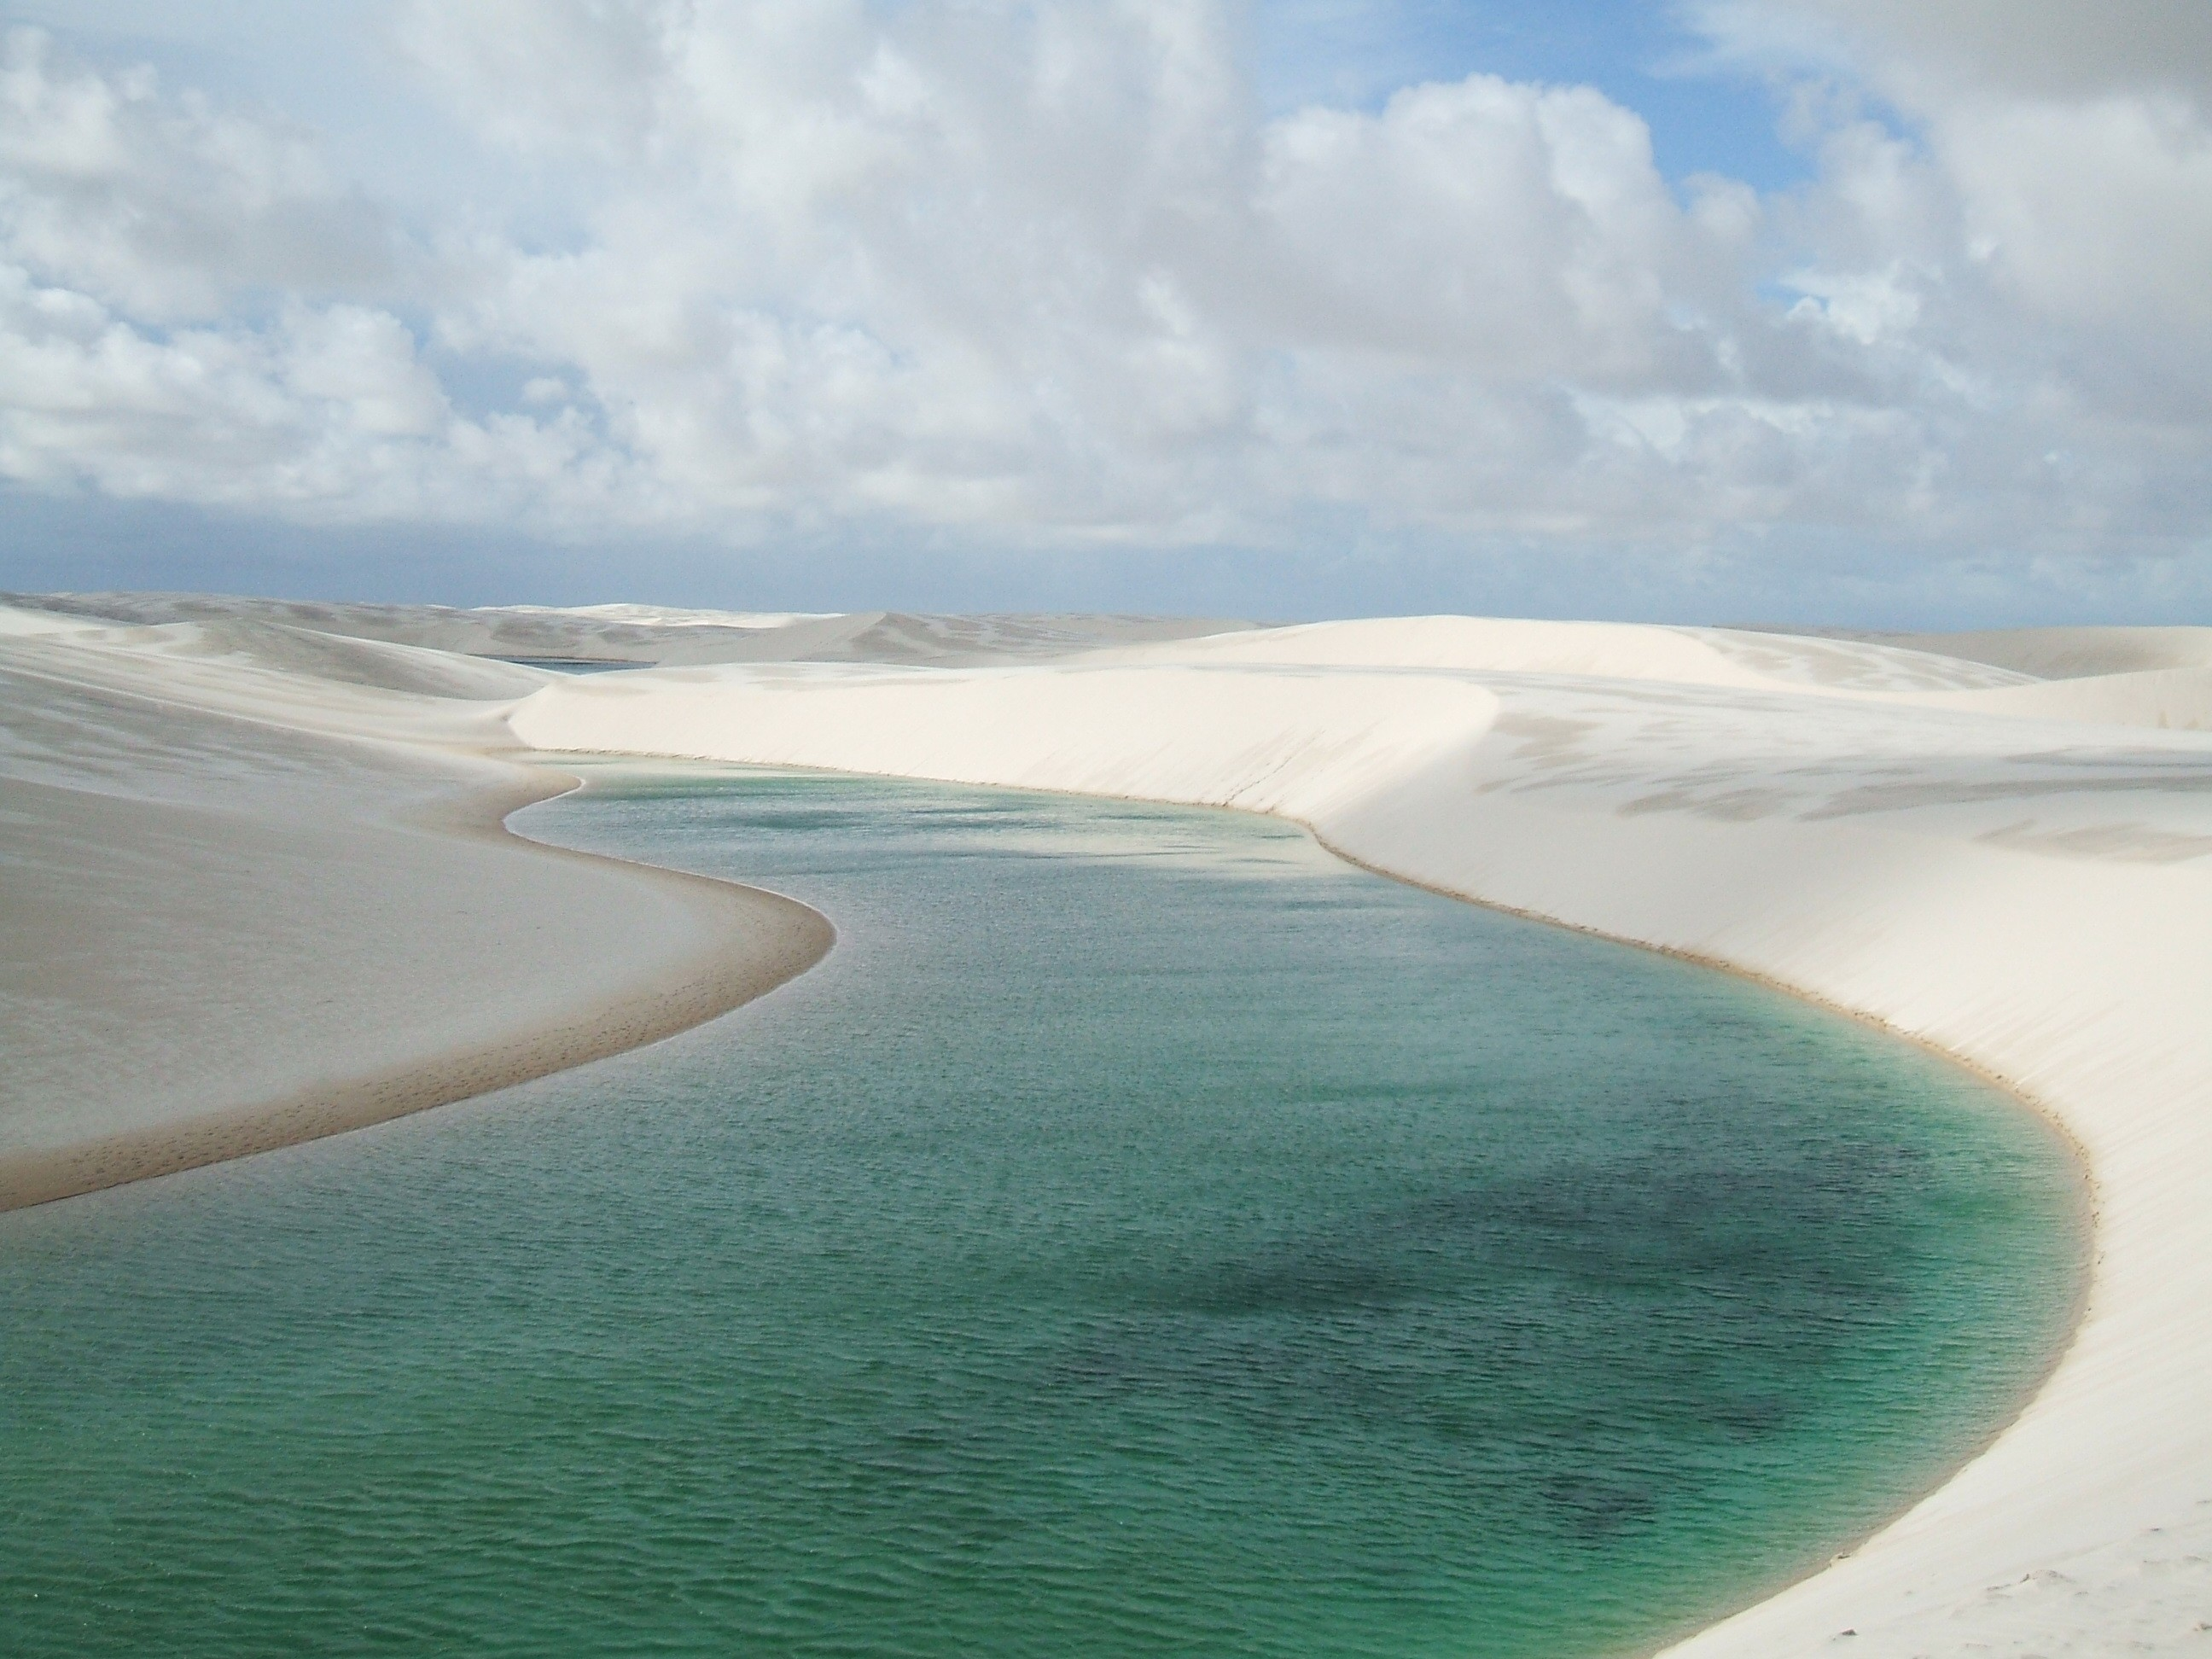 lencois-maranhenses-paradise-in-the-heart-of-the-desert-6